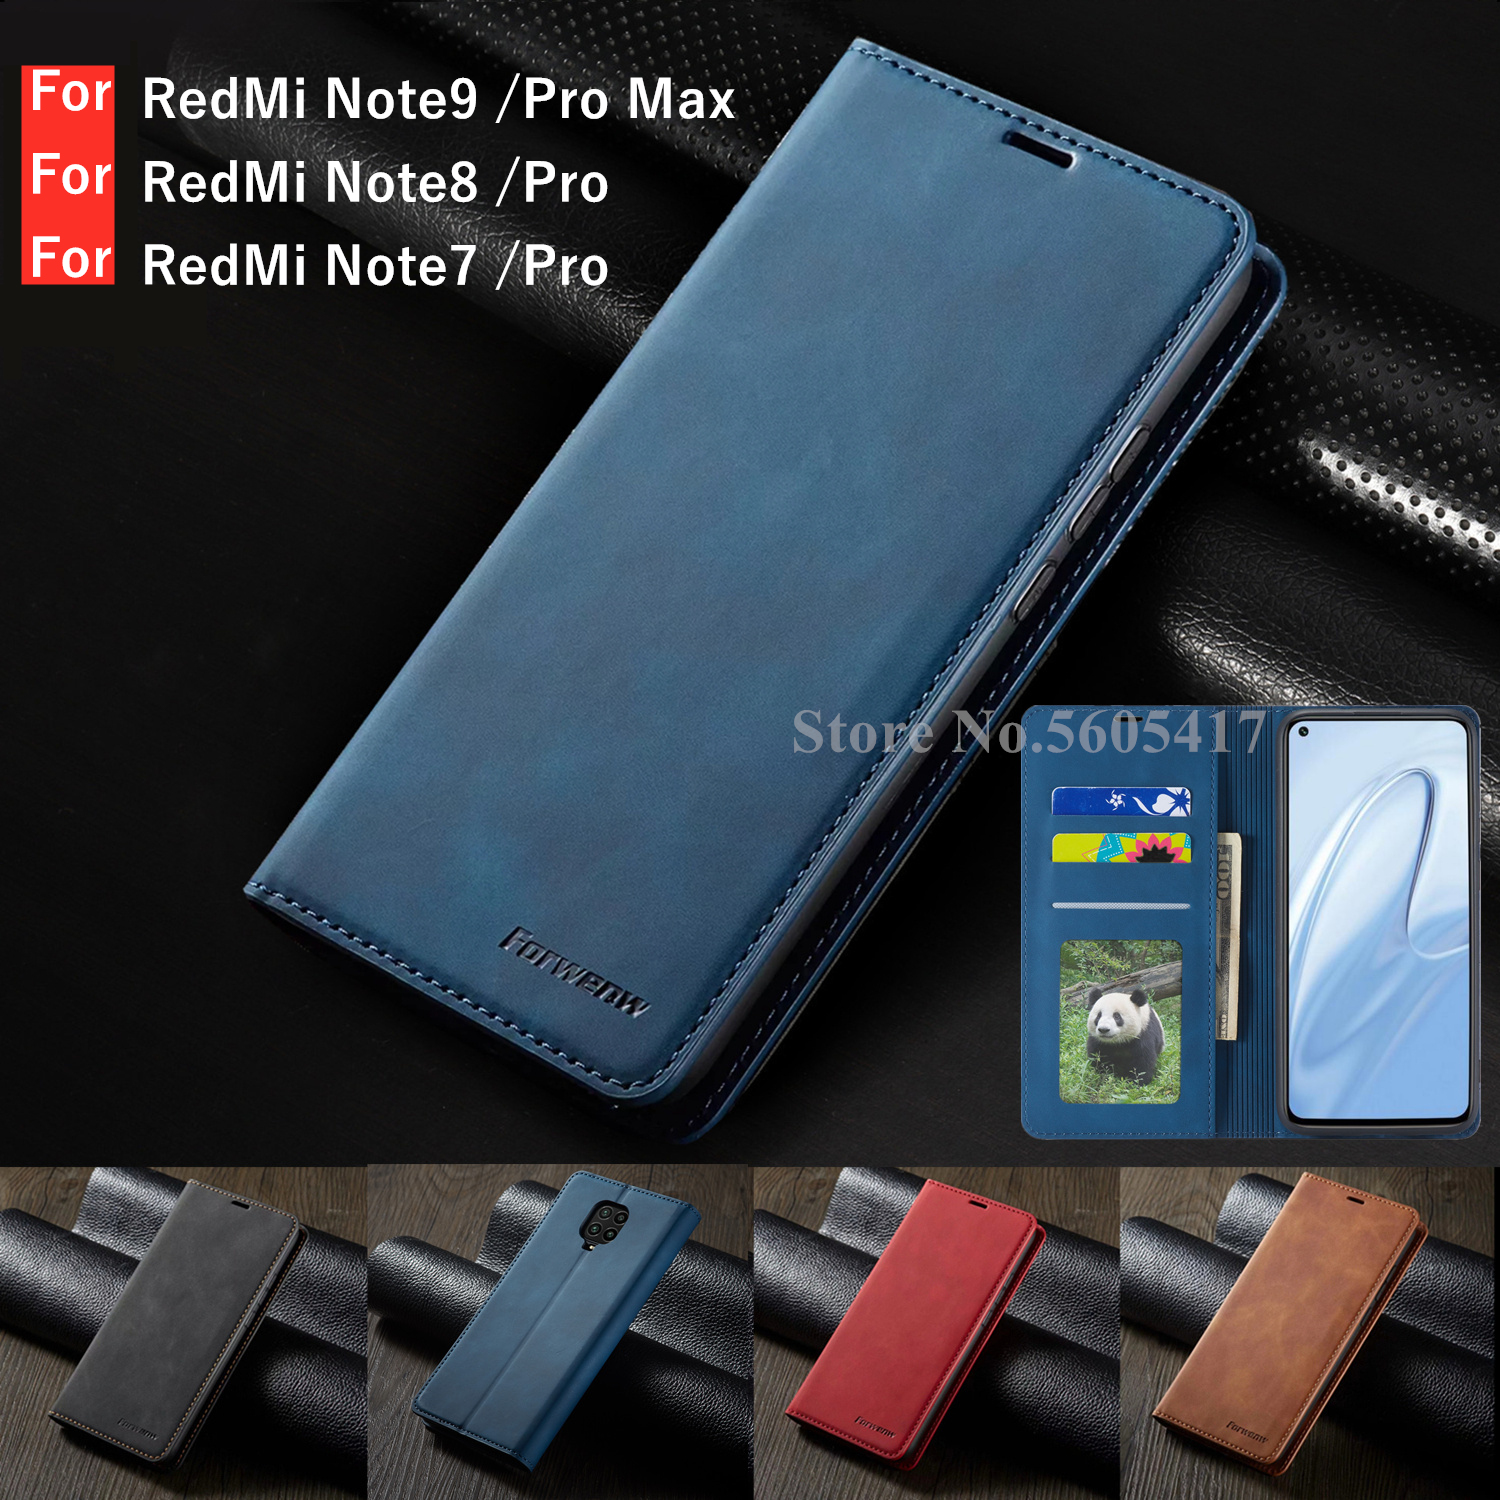 Luxury <font><b>Wallet</b></font> Redmi Note9s Note8pro Leather <font><b>Case</b></font> For <font><b>Xiaomi</b></font> <font><b>Mi</b></font> Redmi Note 9s <font><b>9</b></font> 8 7 Pro Max Strong Magnetic <font><b>Flip</b></font> Card Phone Cover image